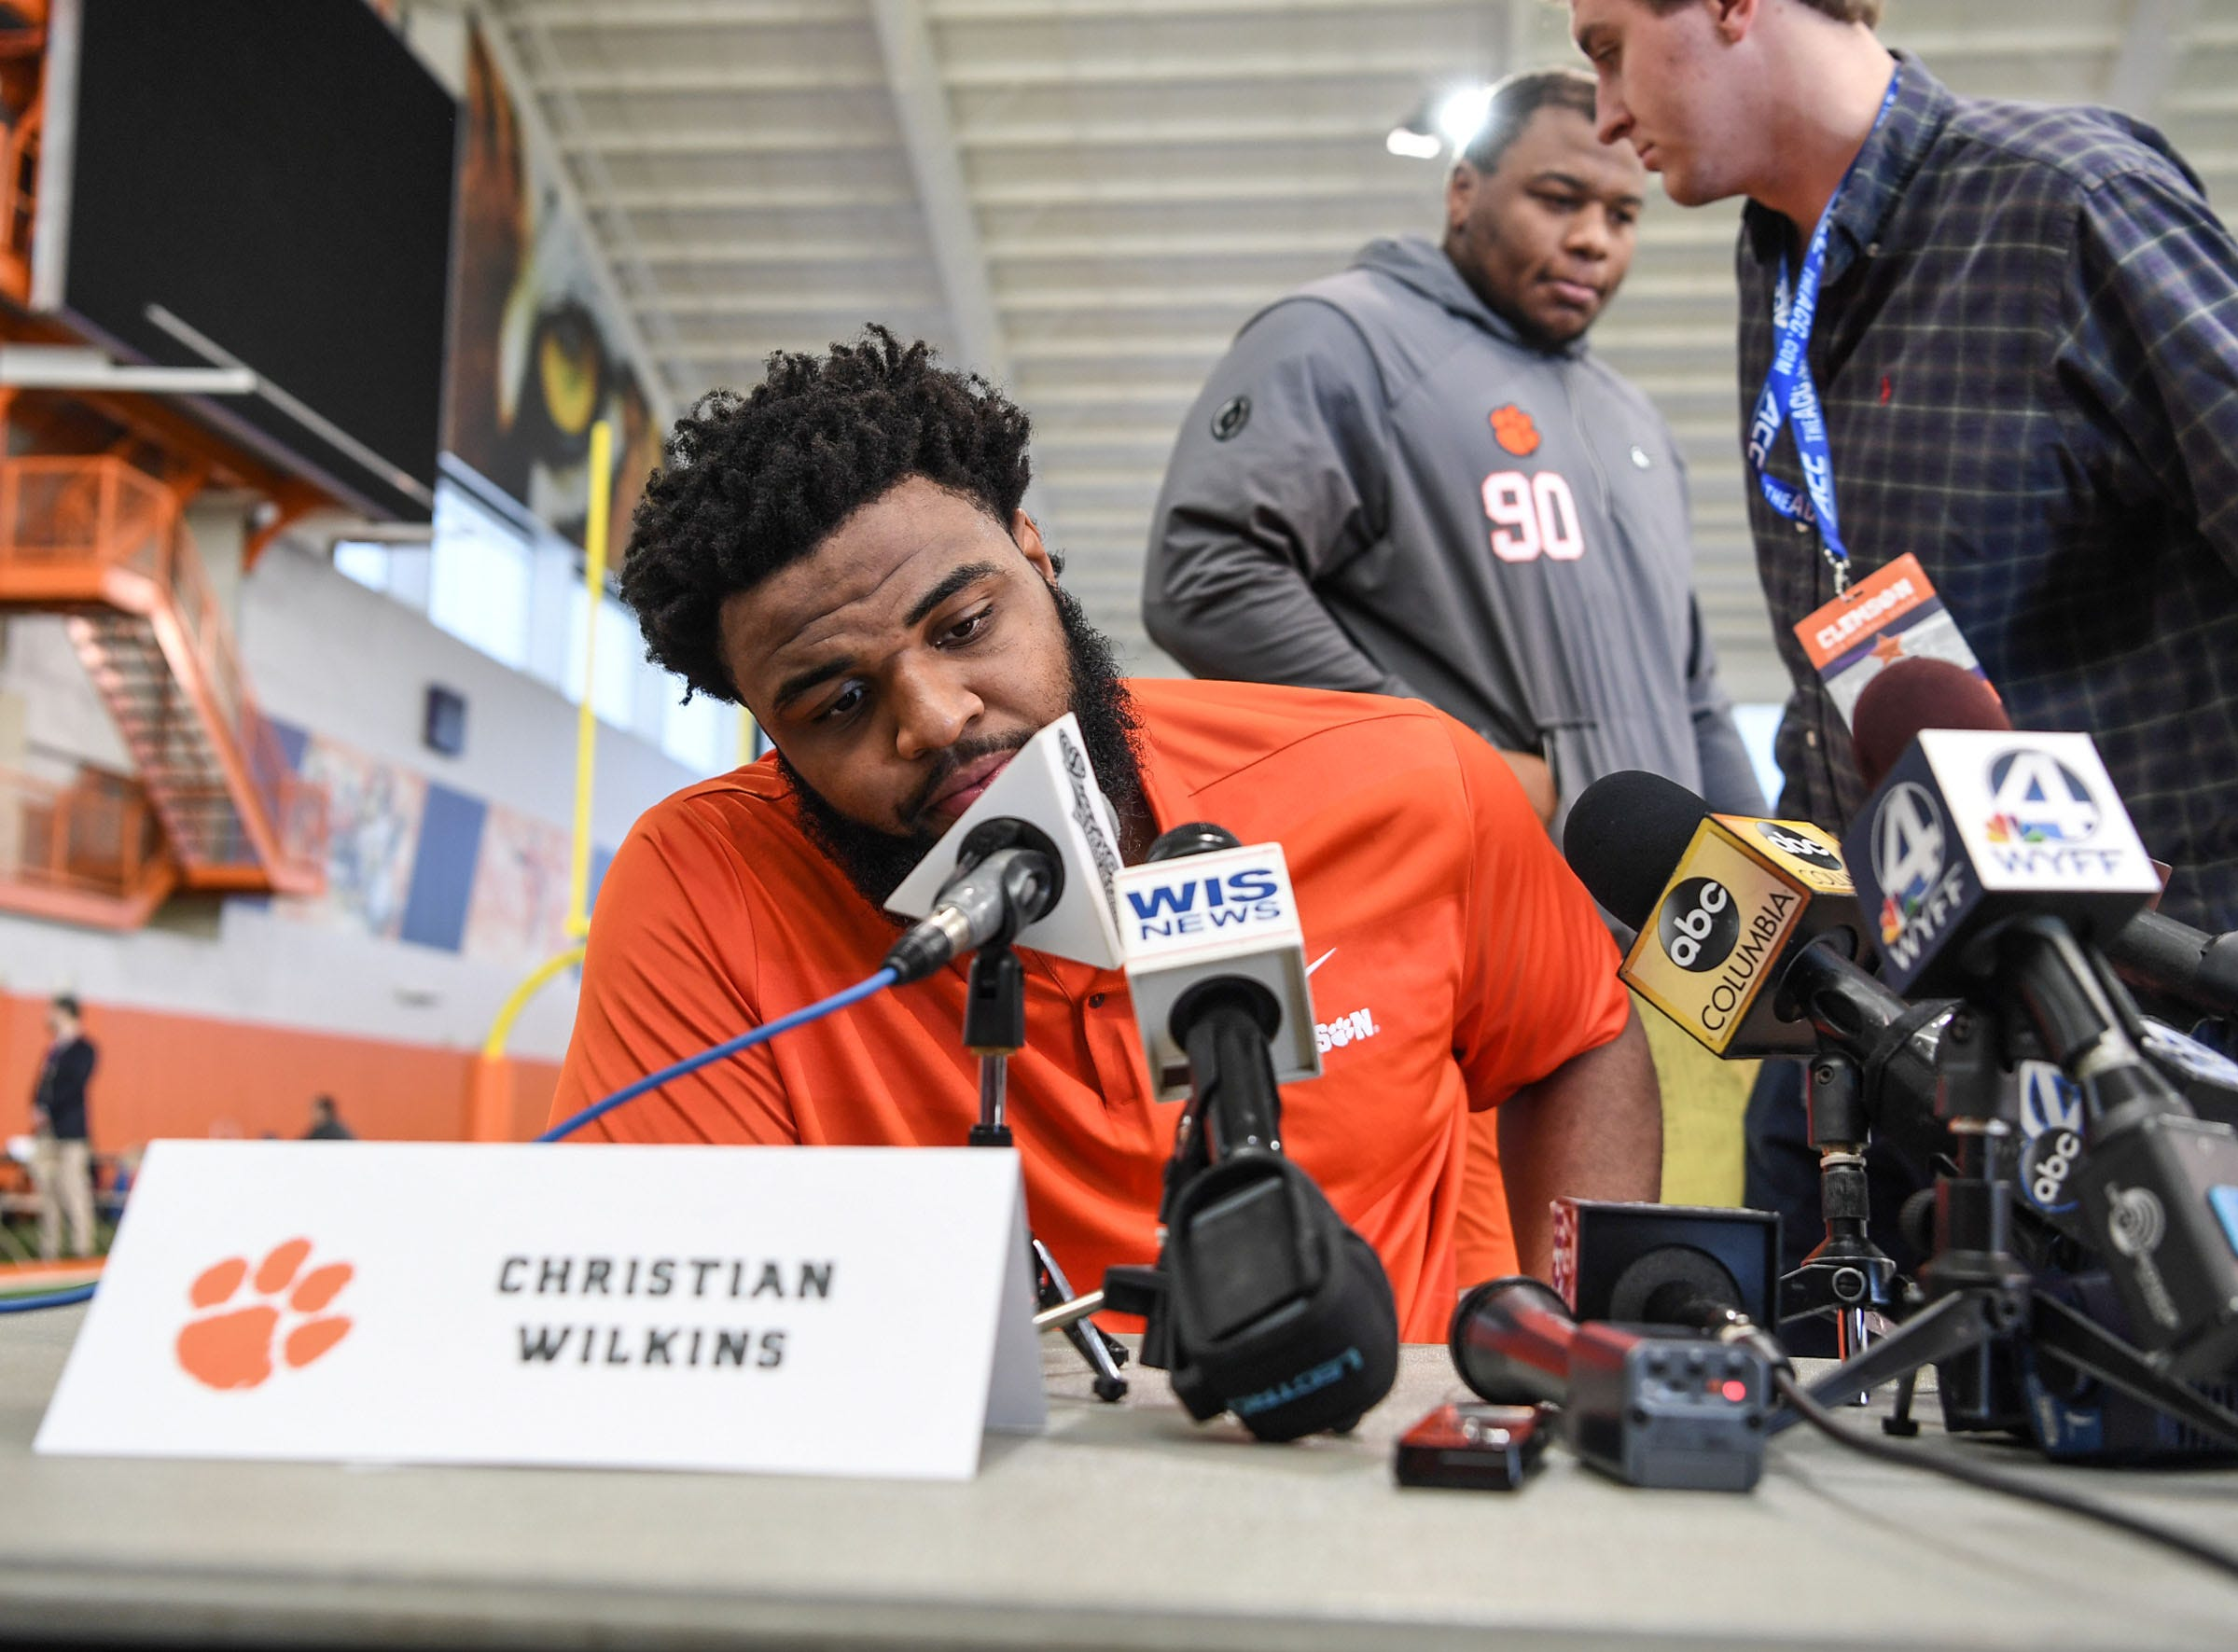 Clemson defensive lineman Christian Wilkins waits for interviews to begin during Media Day at the Poe Indoor Facility in Clemson on Tuesday.